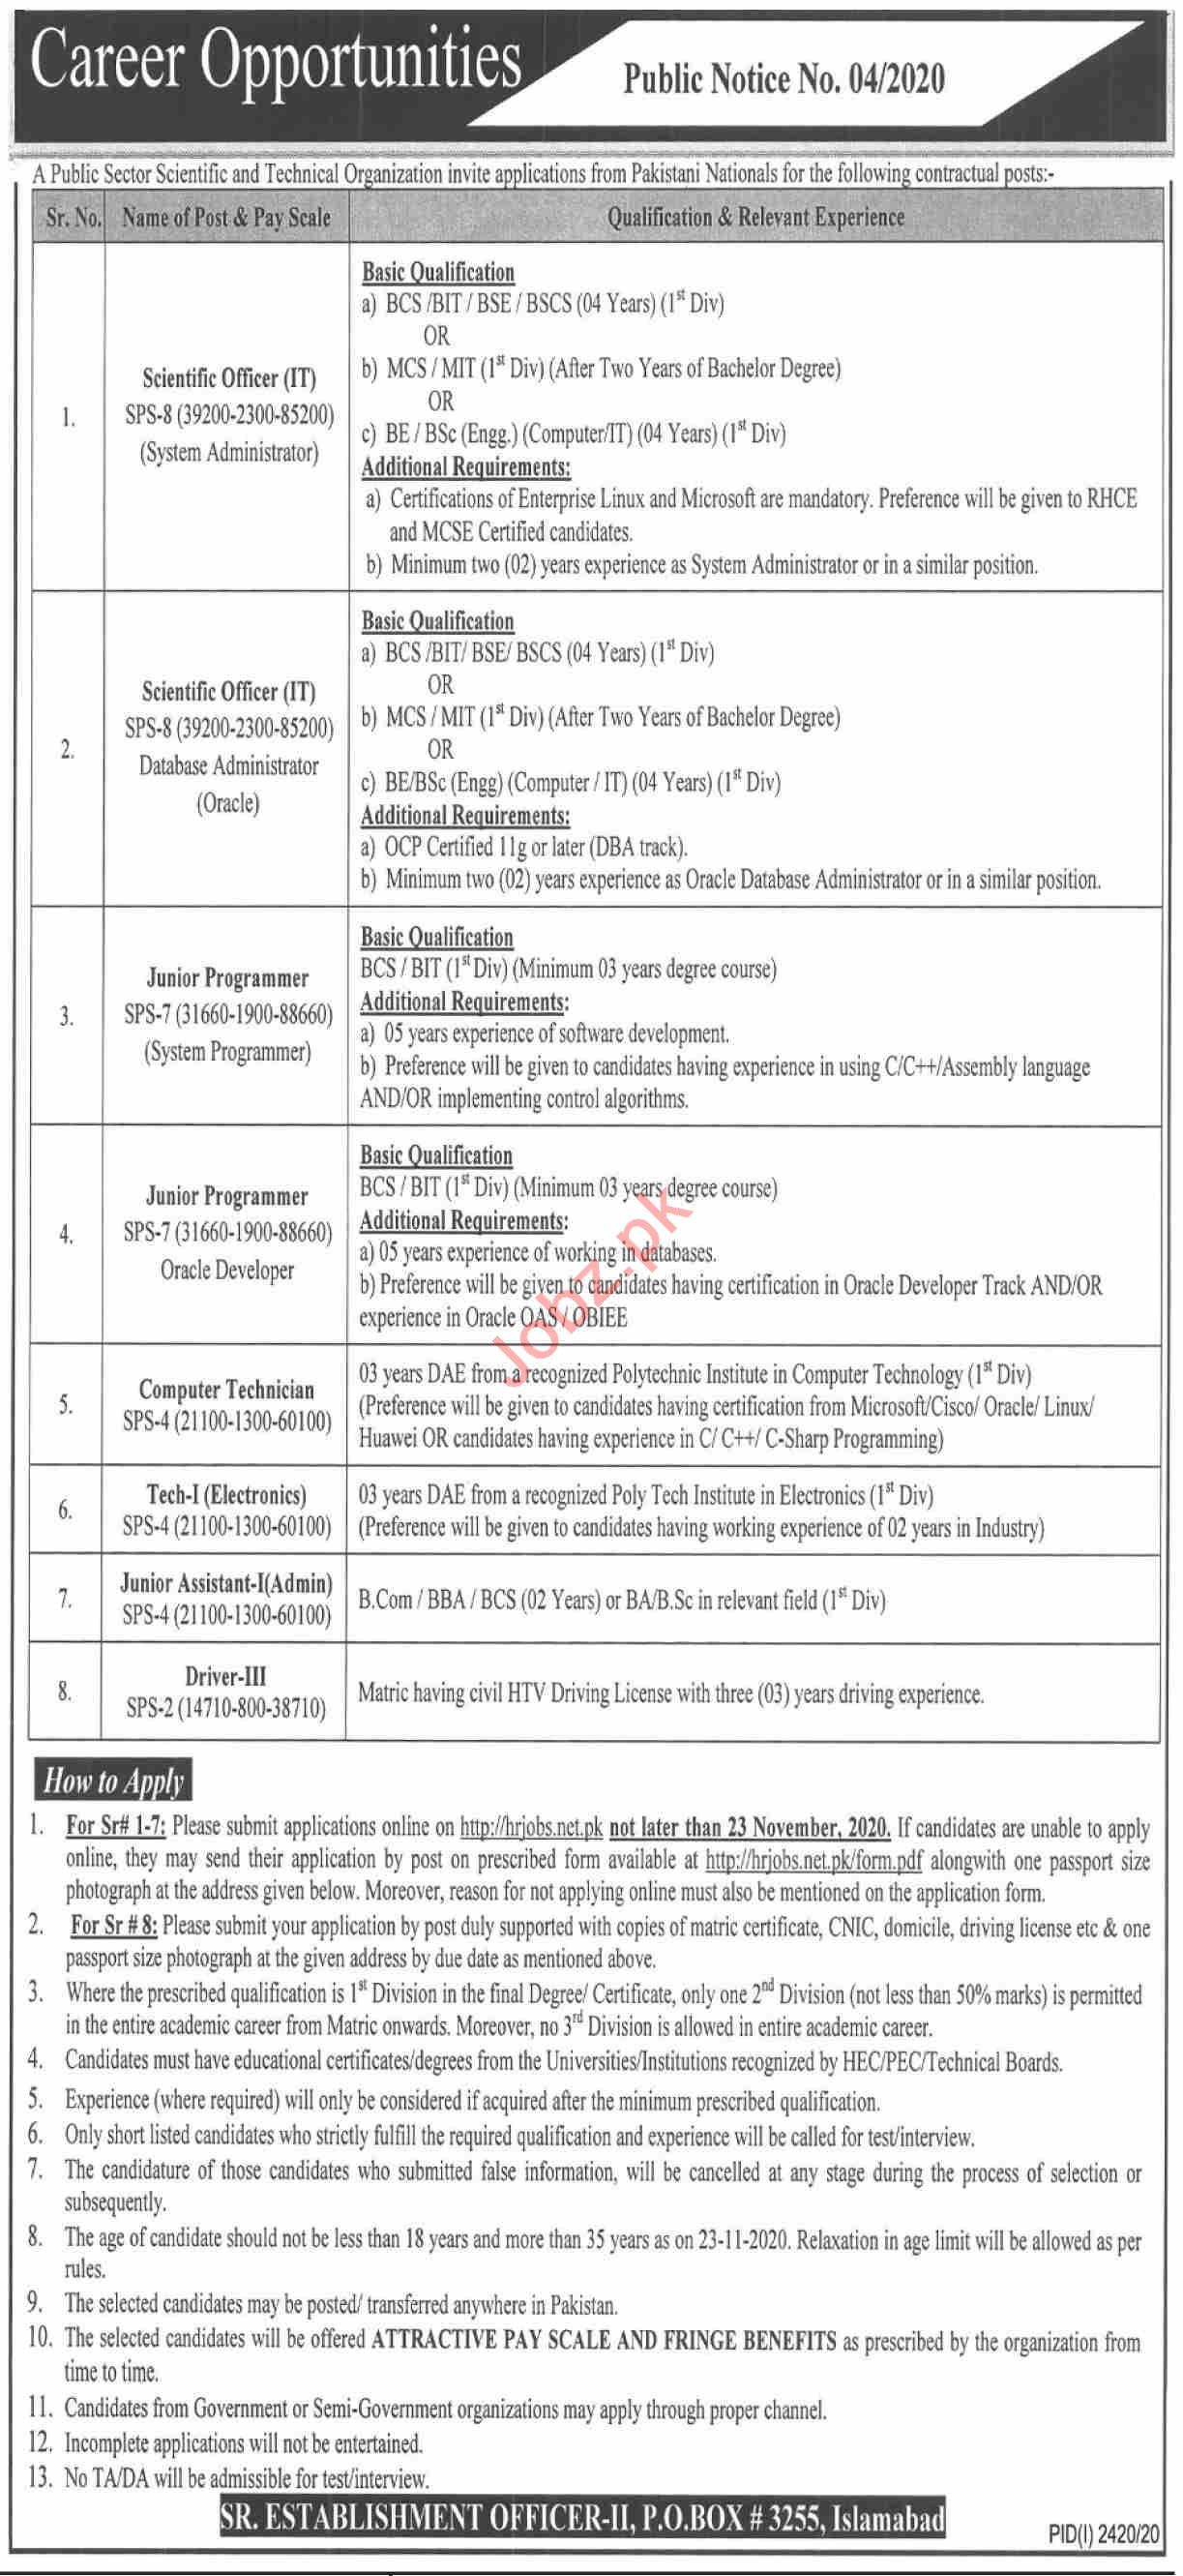 P O Box No 3255 Islamabad Jobs 2020 for Scientific Officer